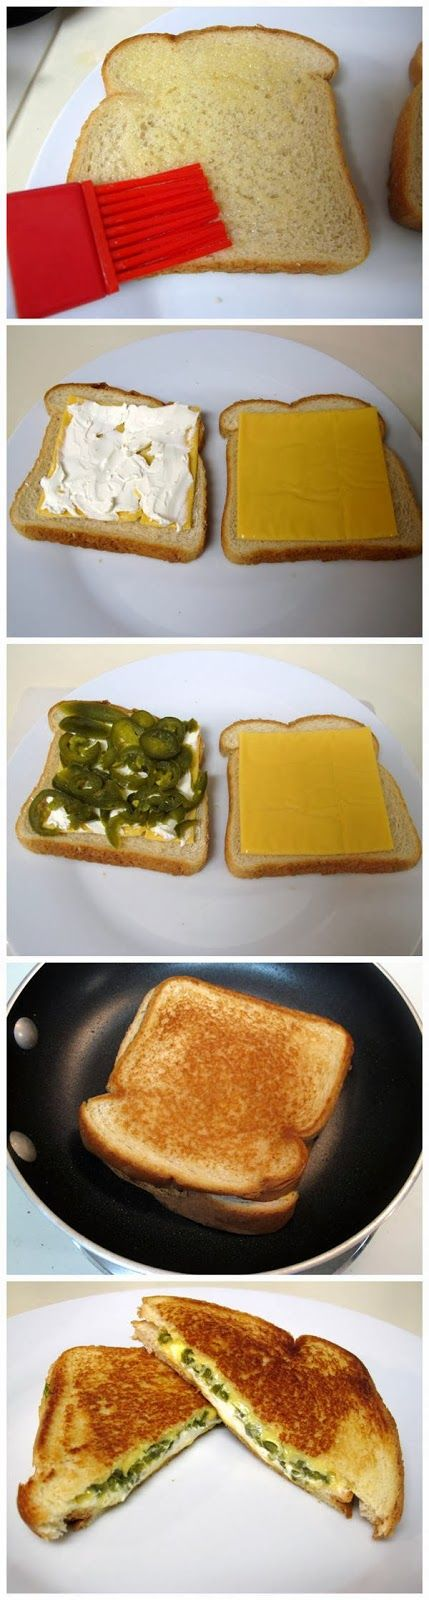 Jalapeno Popper Grilled Cheese Sandwiches - except I would use Cheddar, NOT American!